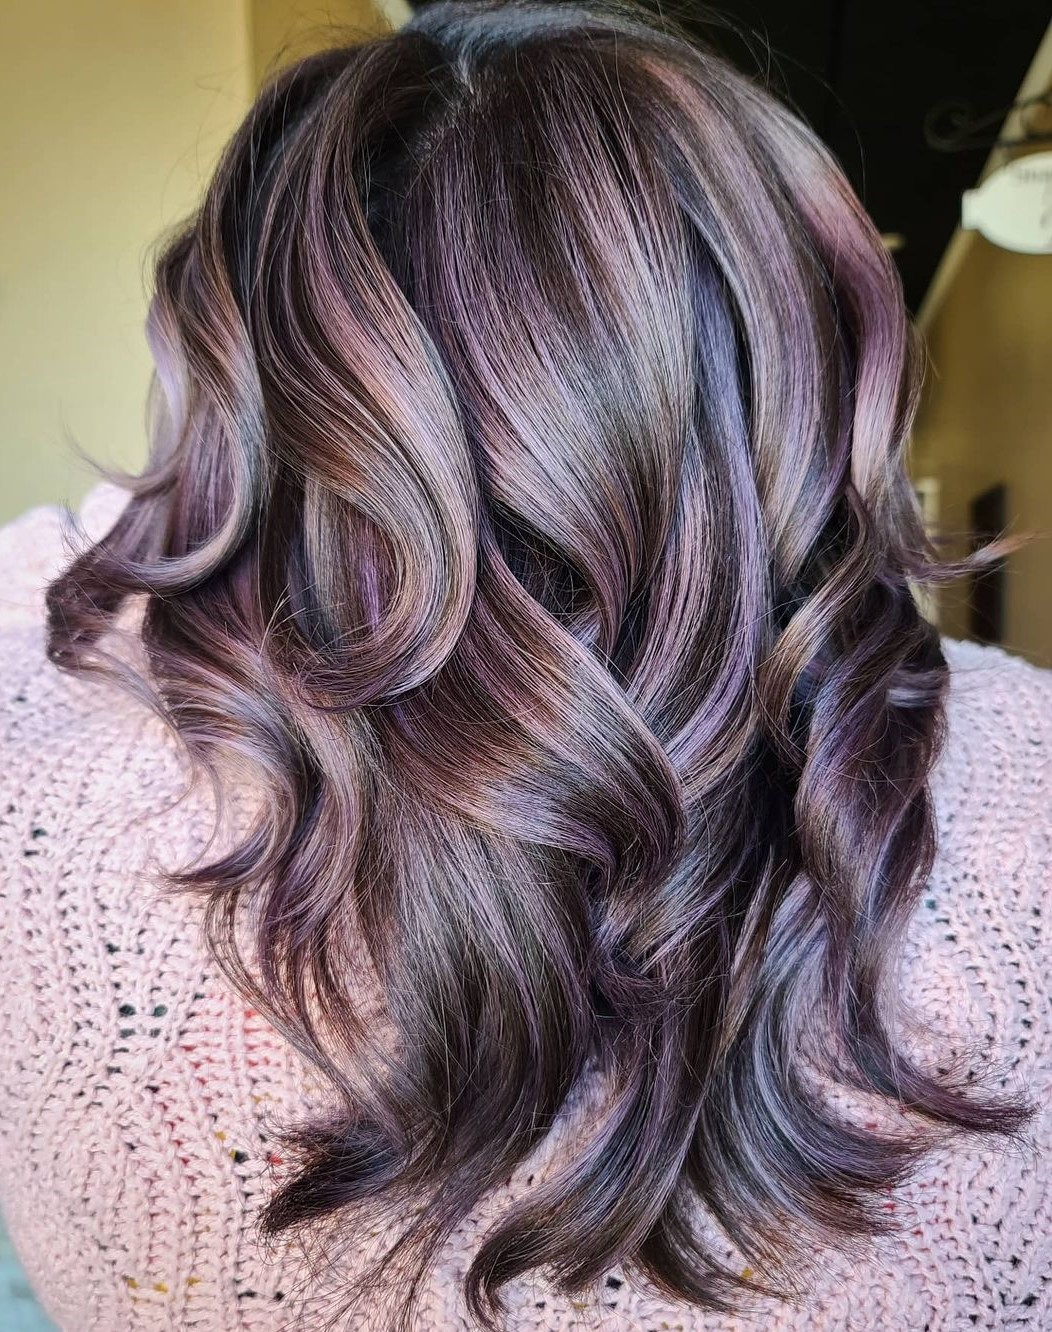 Barely-There Subtle Purple Highlights